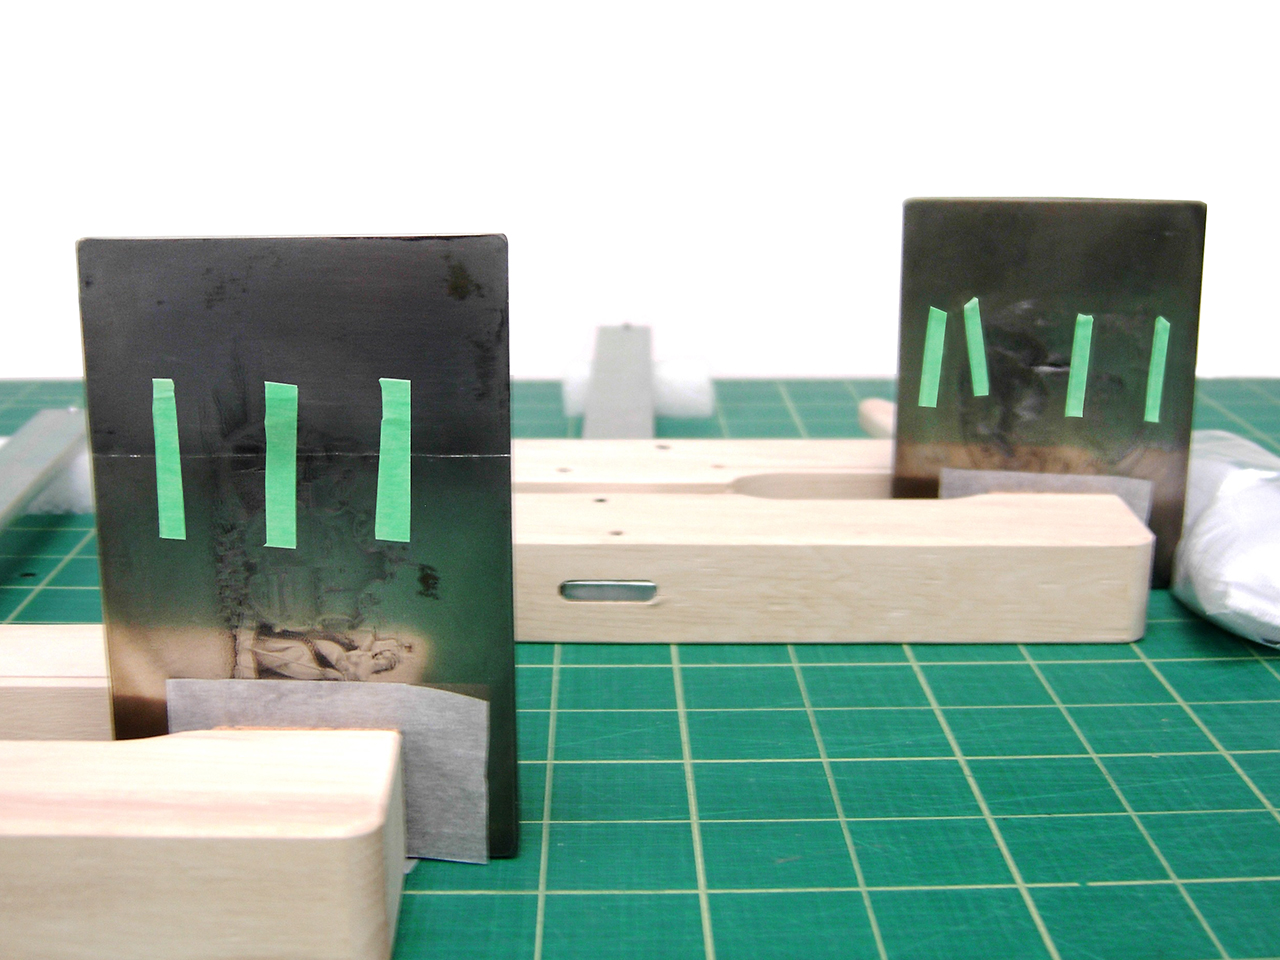 printing plates held in wooden clamps